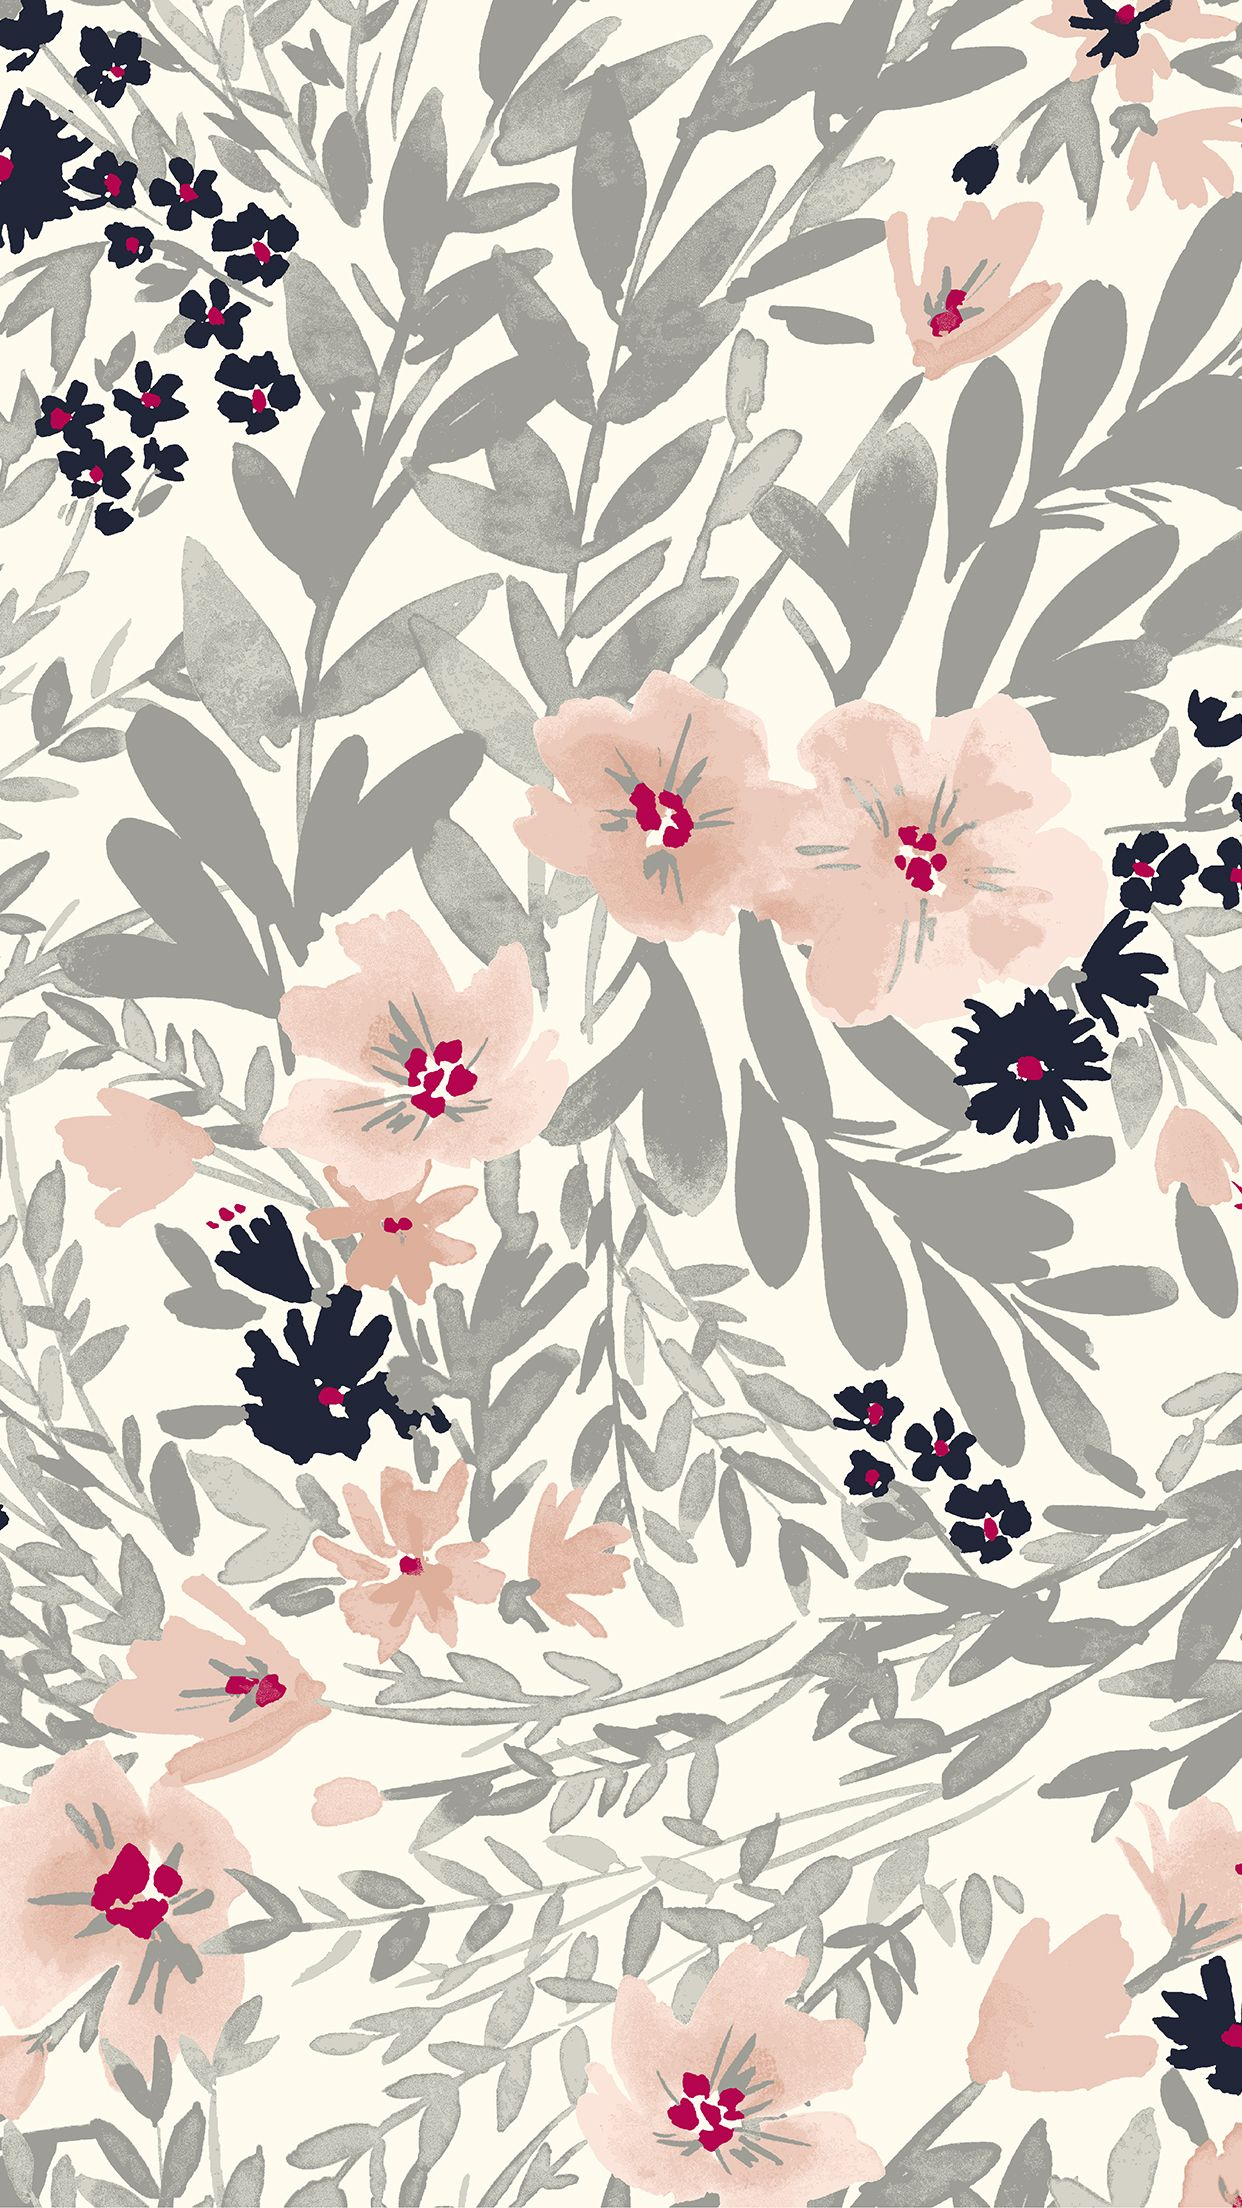 Pin by Maahi Parihar on Flower wallpaper Floral